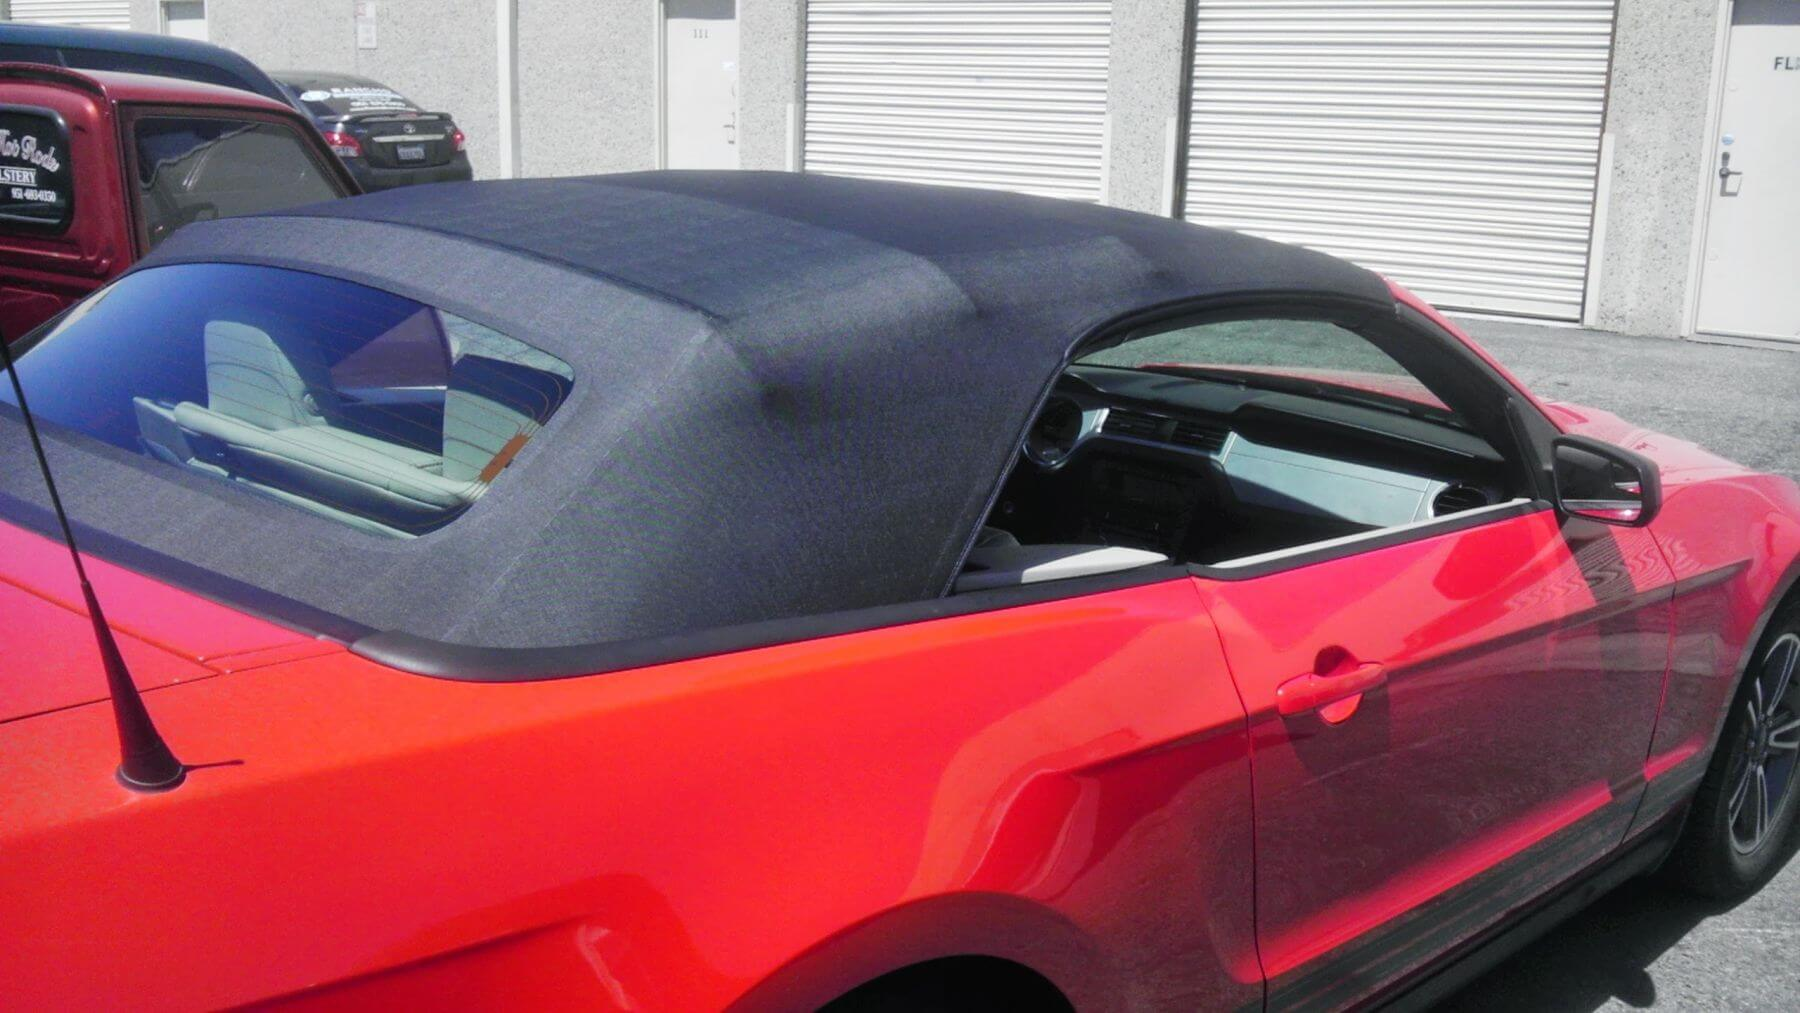 The Owner Of This Vehicle Initially Decided To Go With An Aftermarket Top But Then Changed His Mind After Installation Was Completed And Wanted A